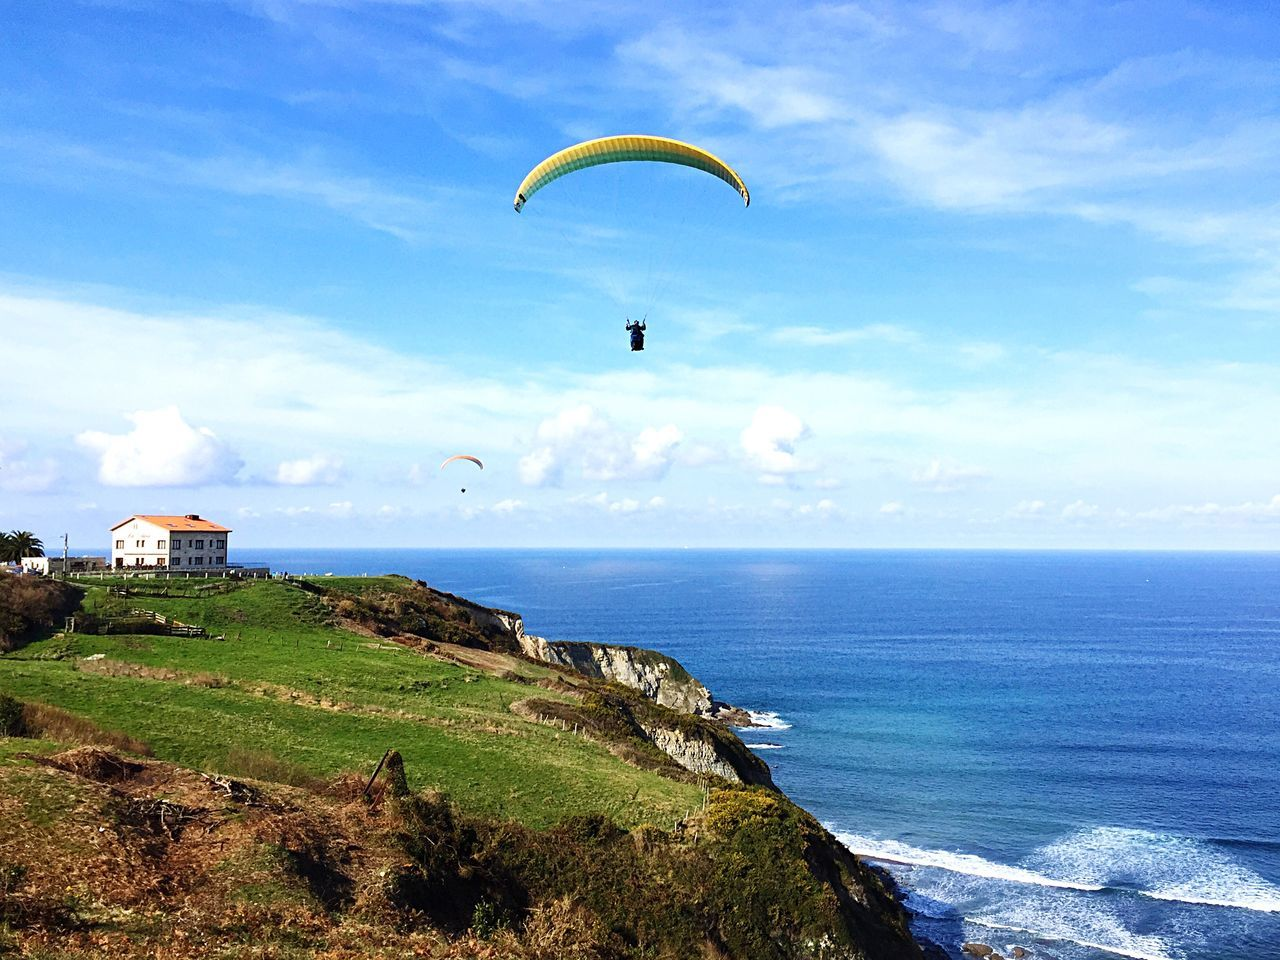 Day Sea Paragliding Sky Adventure Parachute Horizon Over Water Beauty In Nature Asturias Asturias Paraiso Natural🌿🌼🌊🌞 Outdoor Photography Sports Xtreme Outdoors Nature Scenics Real People One Person Extreme Sports Water